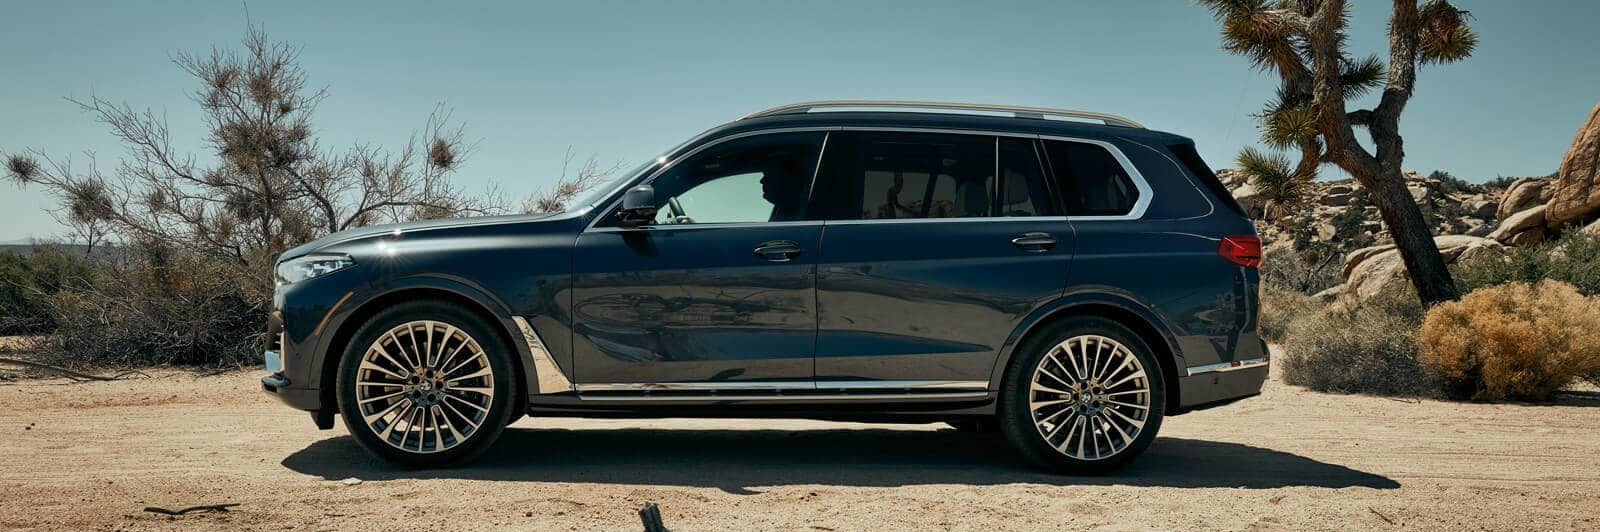 Profile shot of the BMW X7 in a desert climate